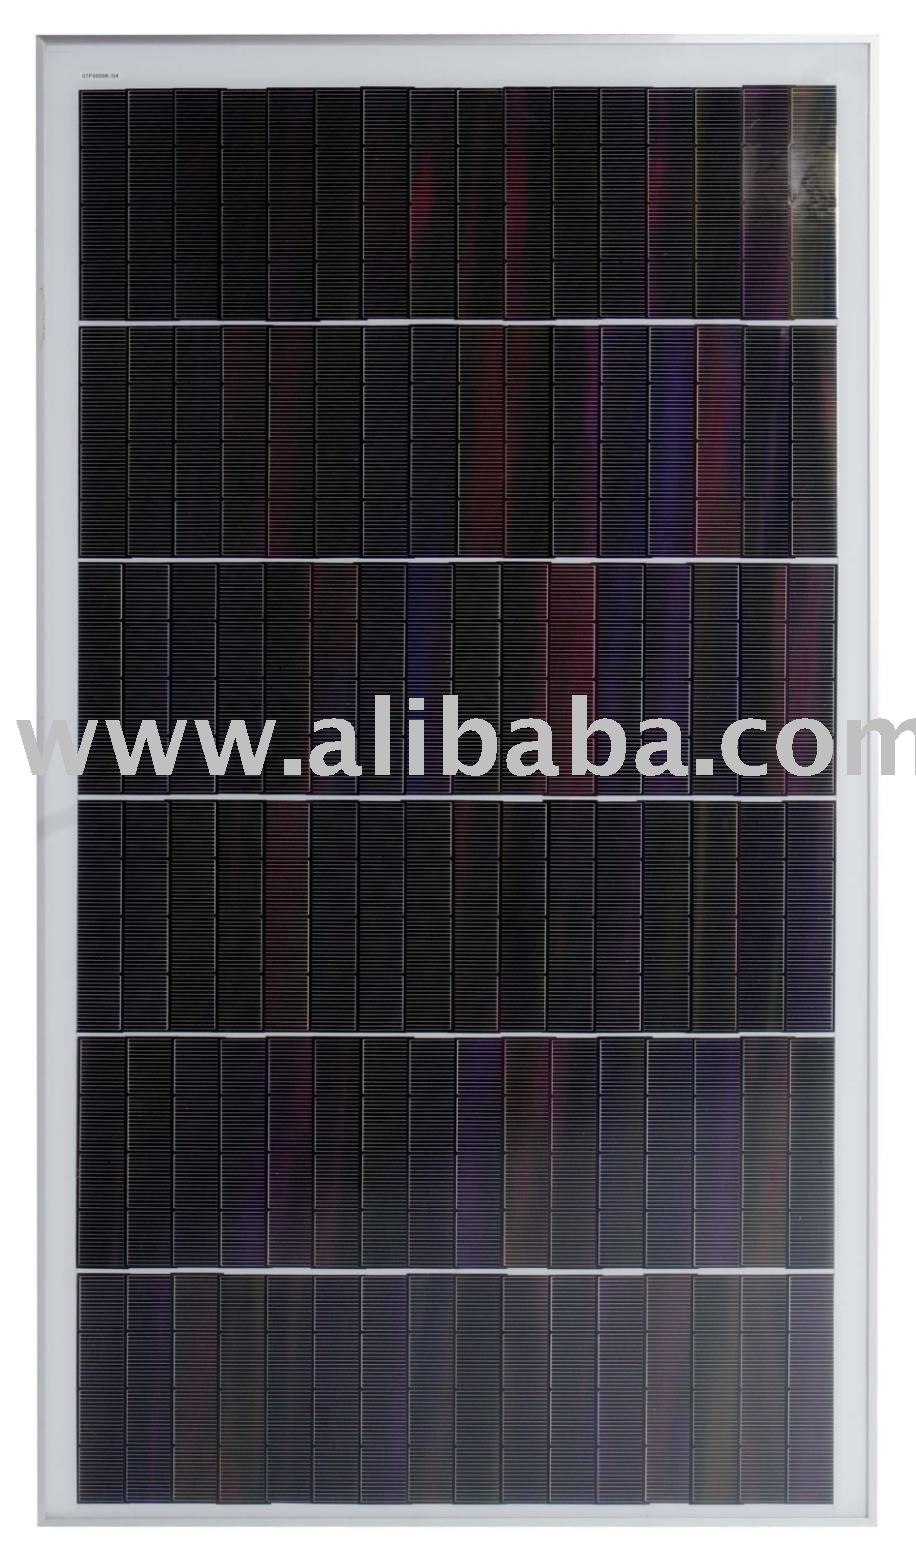 me2solar cigs photovoltaic solar panel 60 watt buy solar panel product on. Black Bedroom Furniture Sets. Home Design Ideas